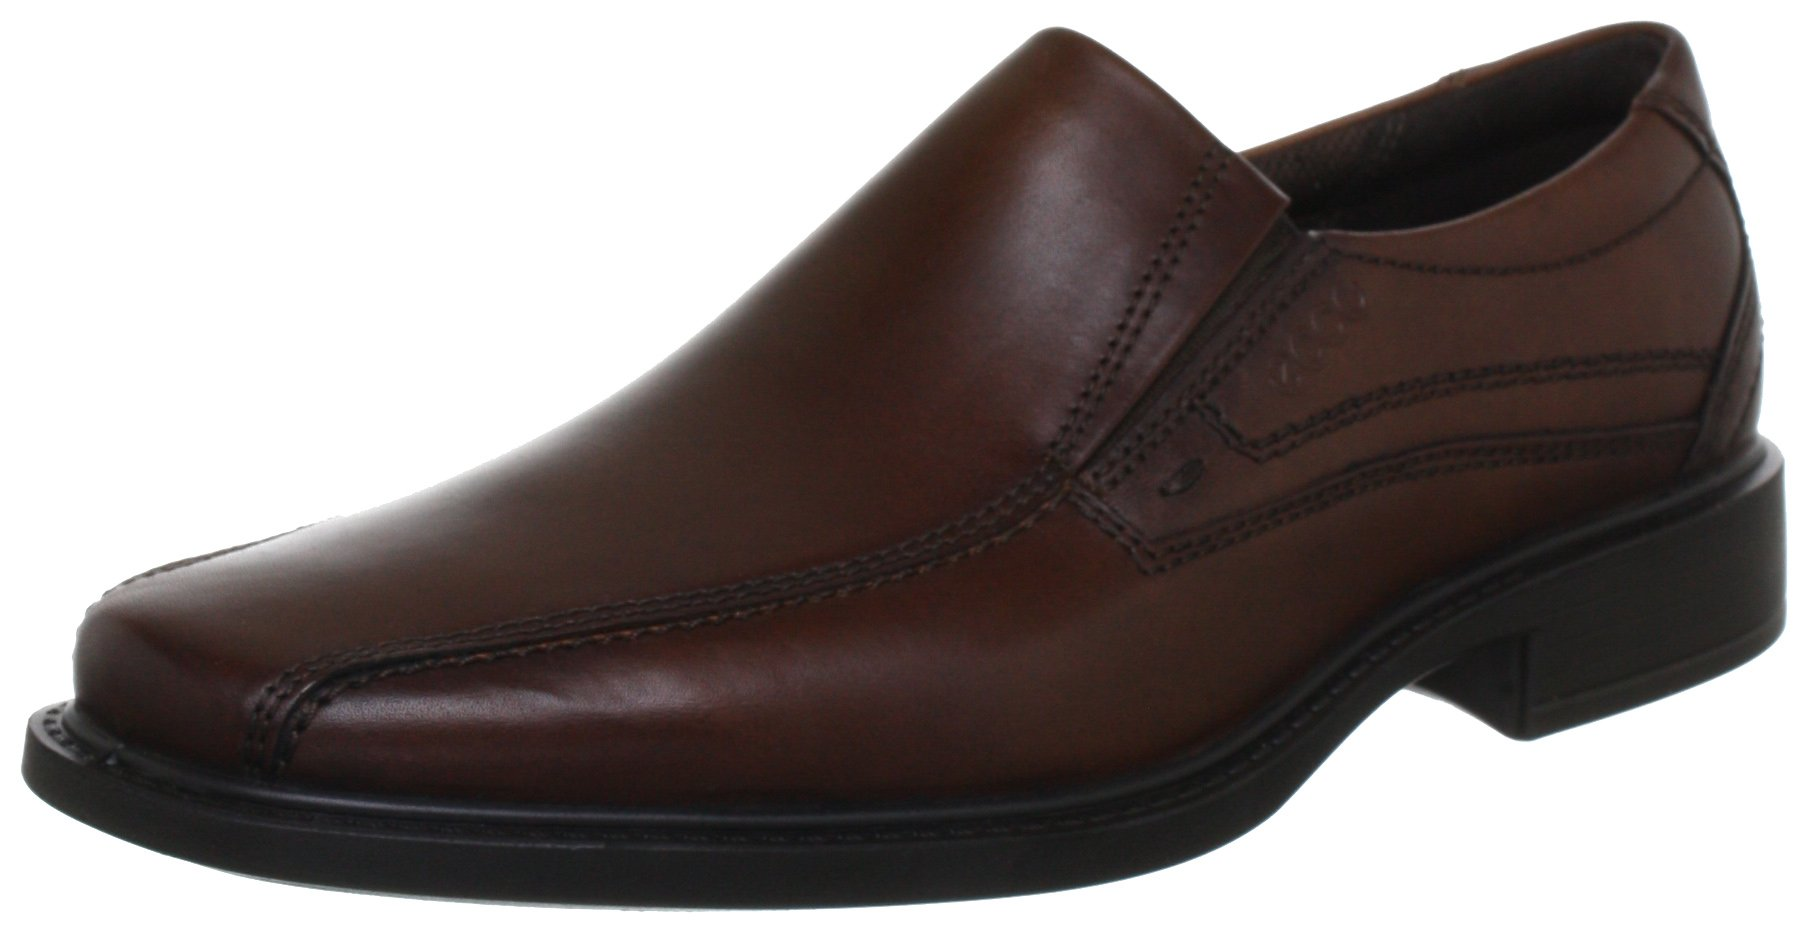 ECCO Men's New Jersey  Loafer,Mink,43 EU/9-9.5 M US by ECCO